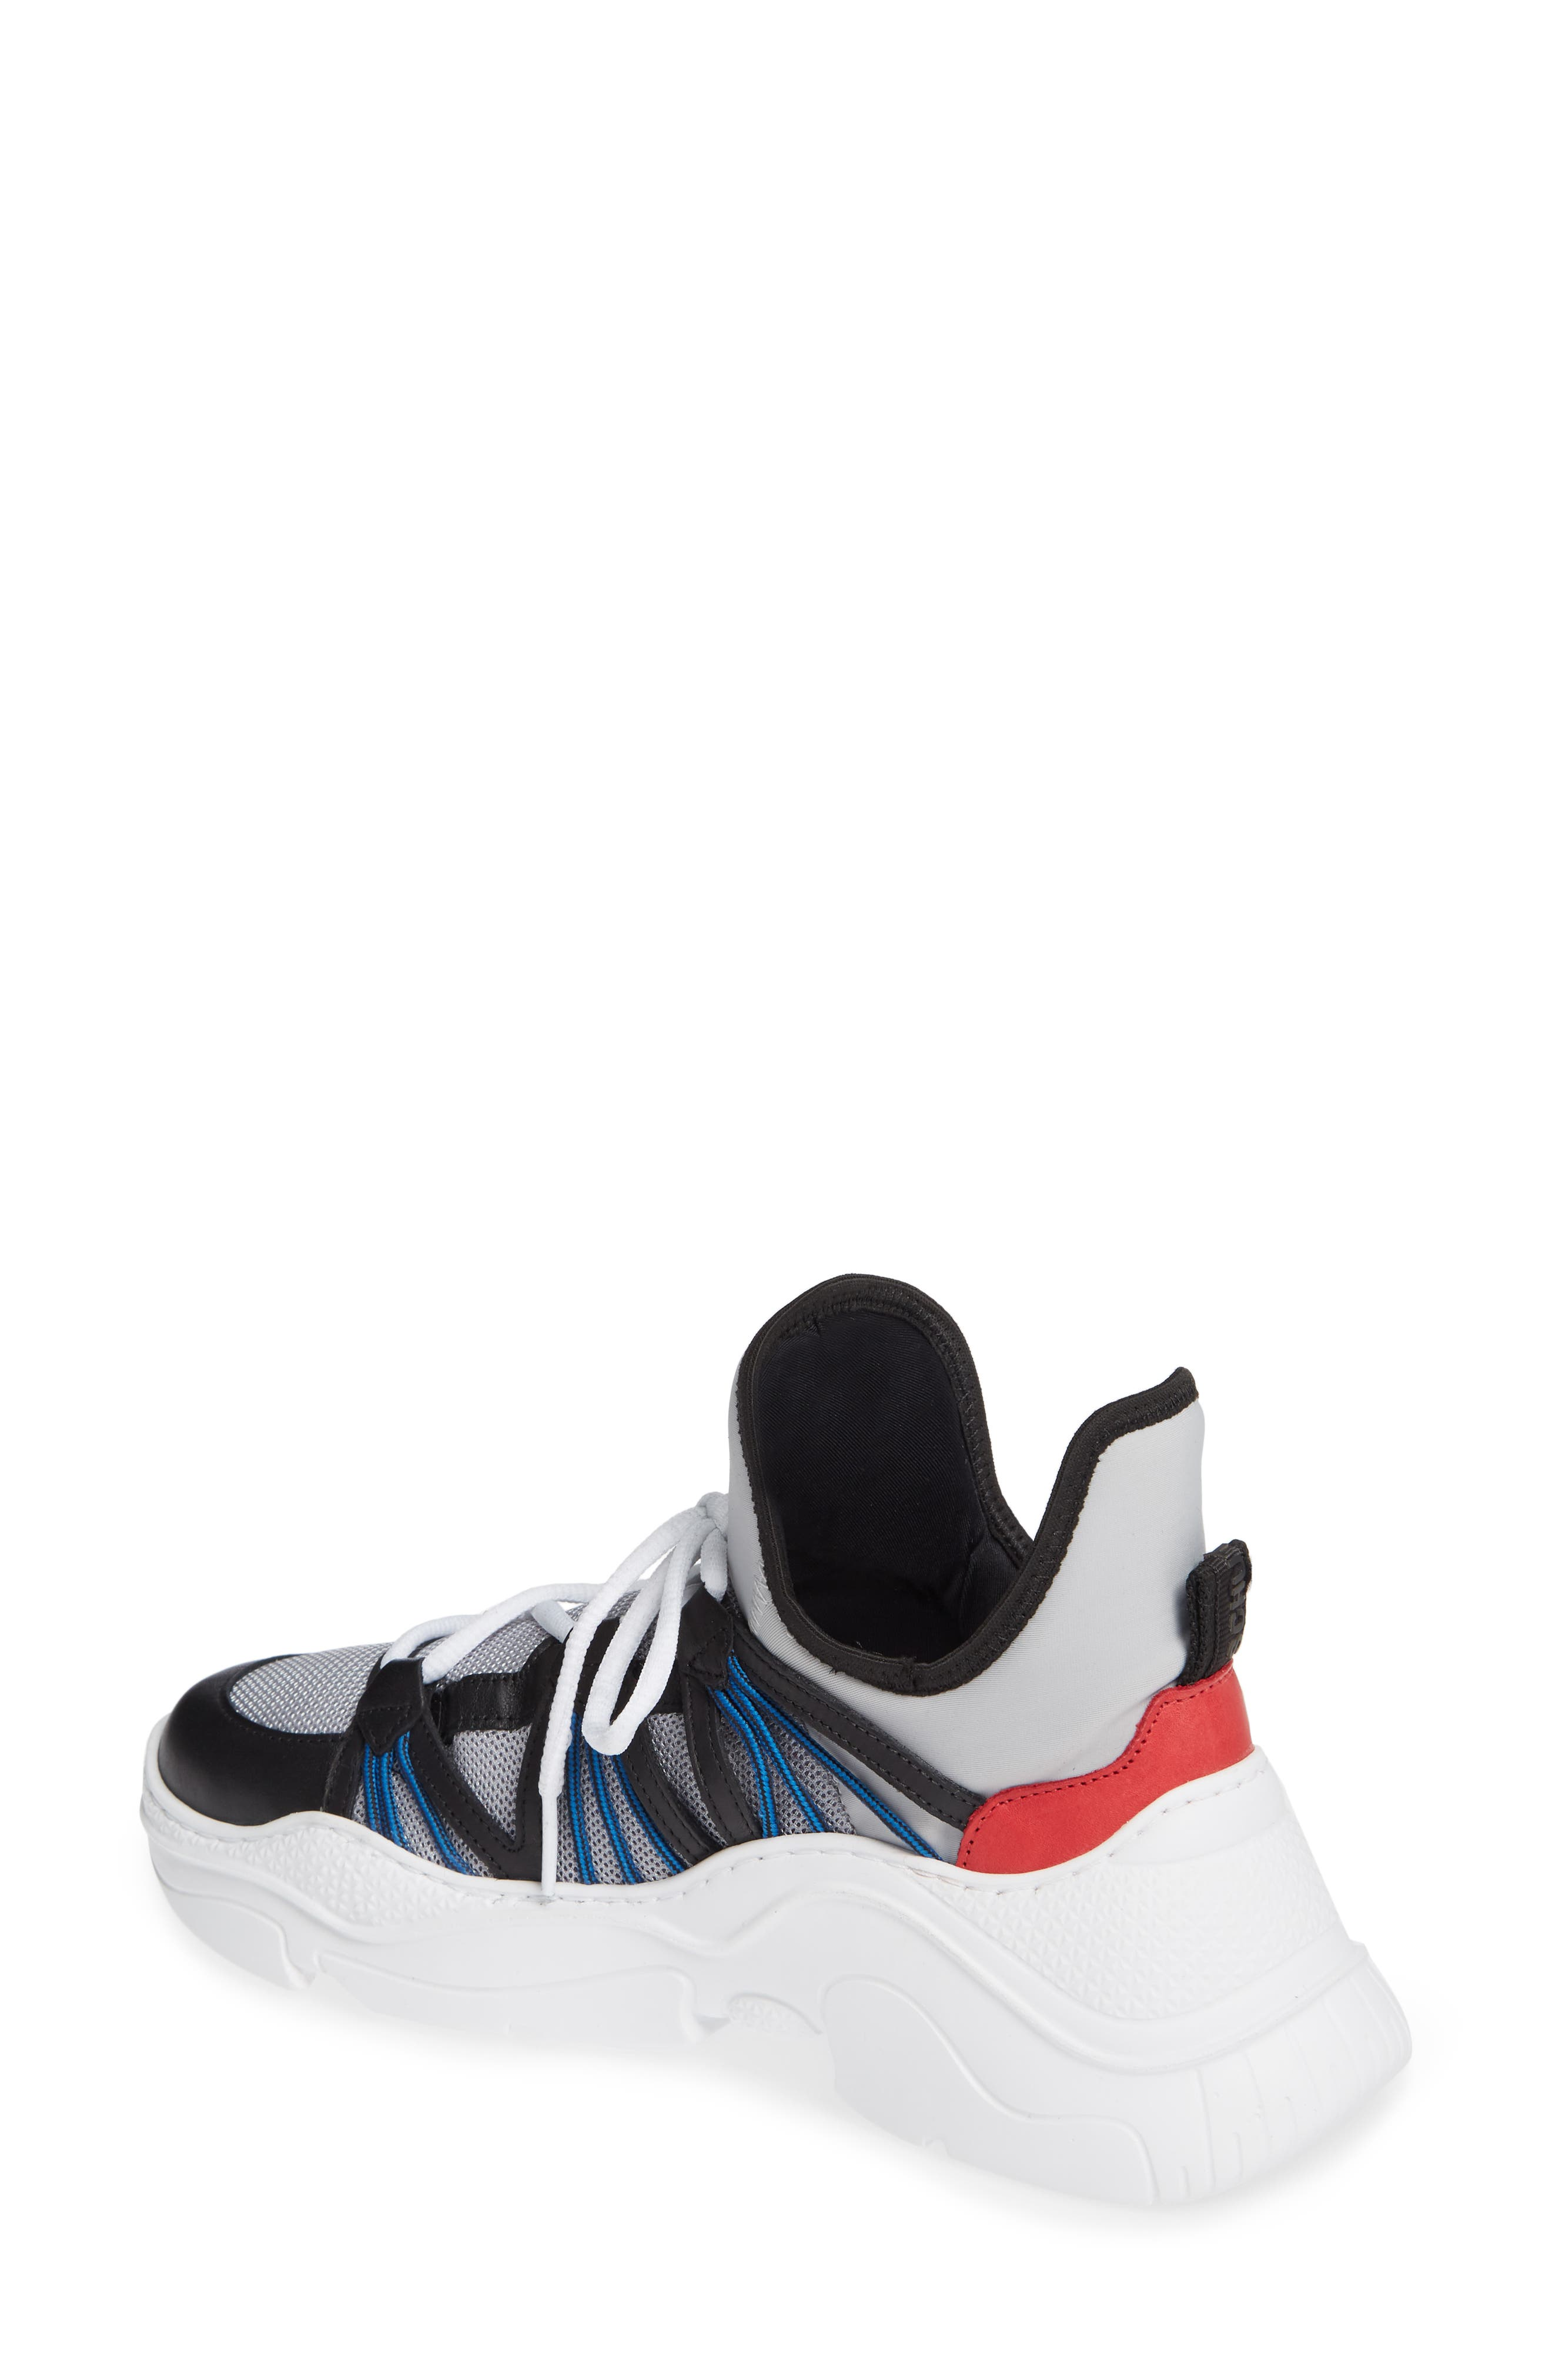 Anick Lace-Up Sneaker,                             Alternate thumbnail 2, color,                             SILVER/ BLACK/ CLUB RED